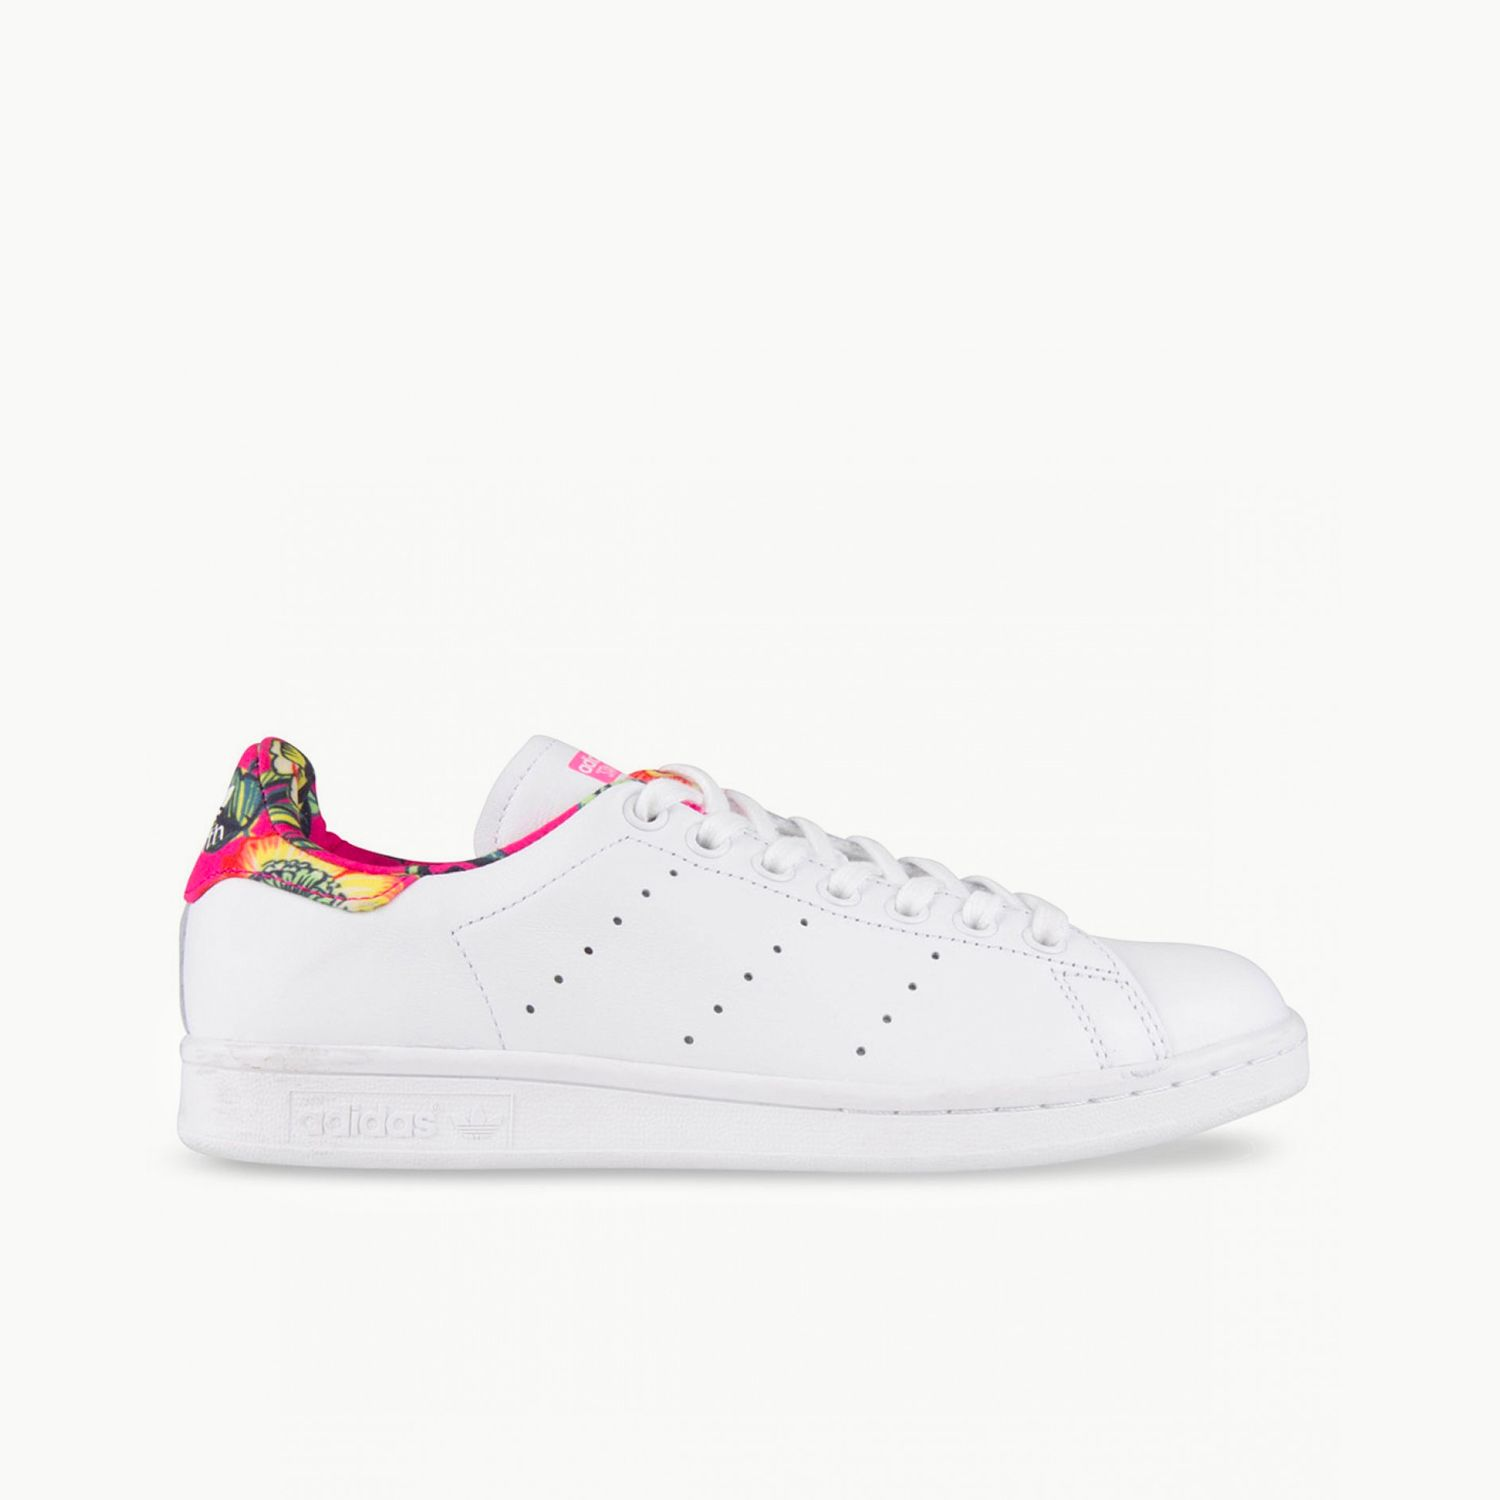 ADIDAS ORIGINALS STAN SMITH: Ray Pink | Available at HYPE DC